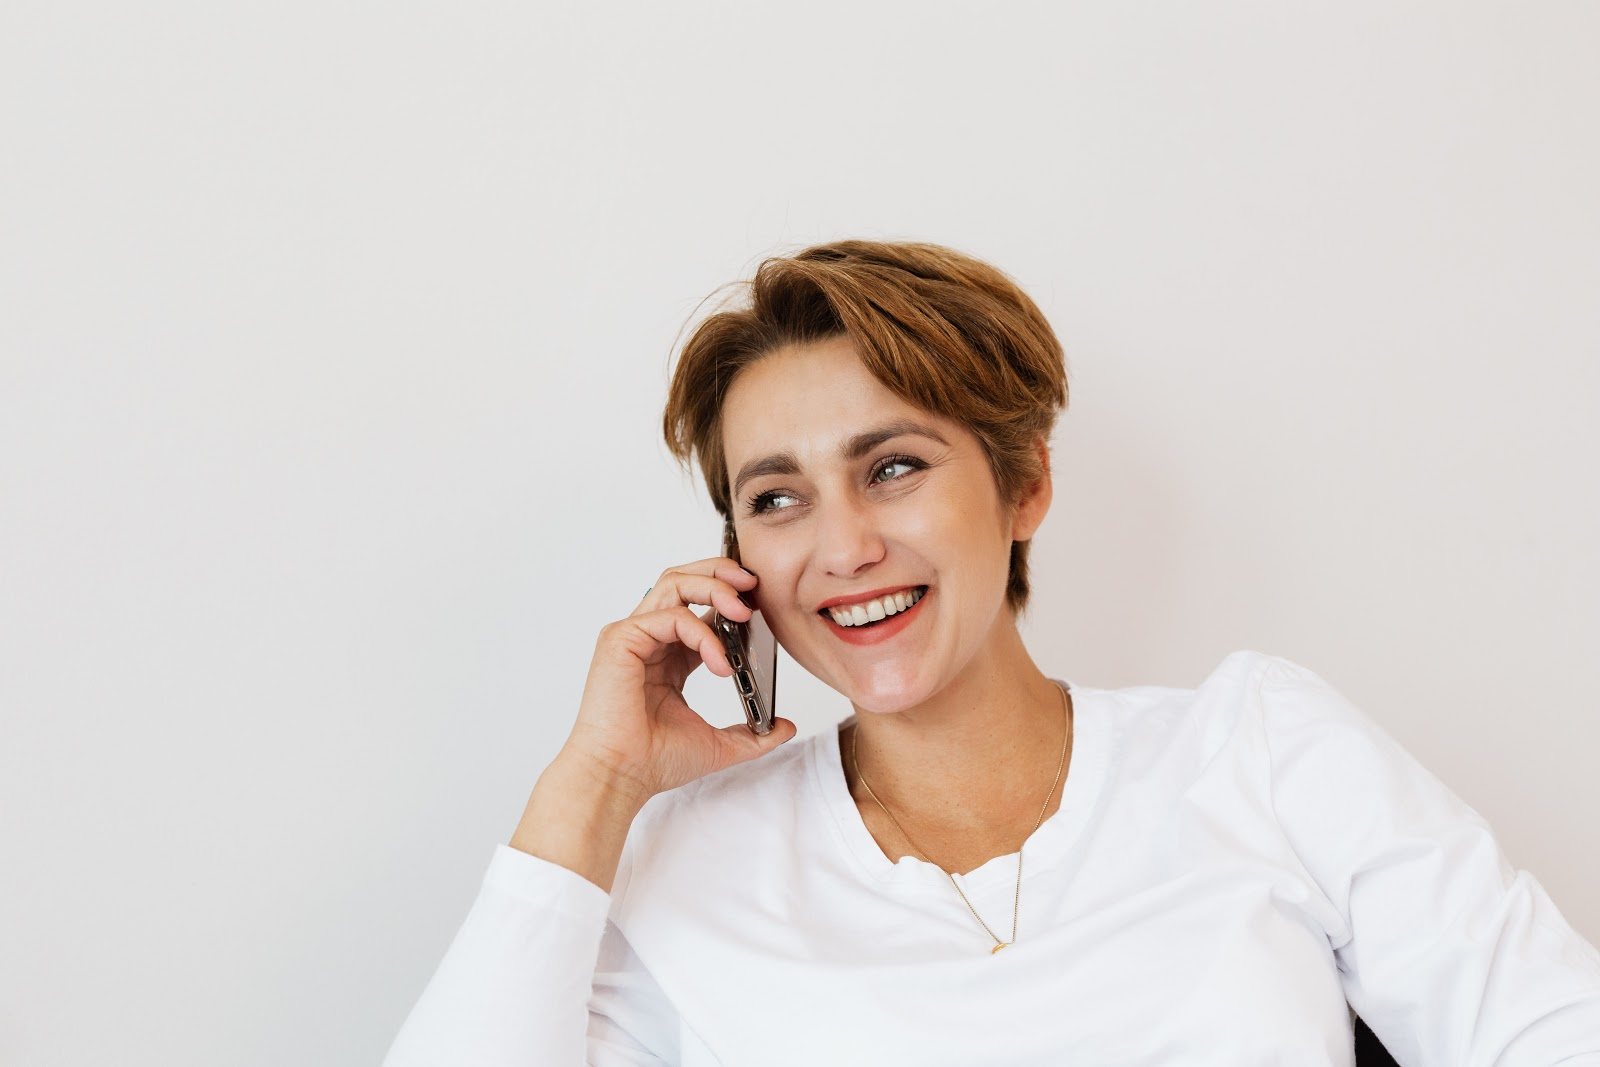 A woman happily talking on phone to her friend as a measure to cope with anxiety